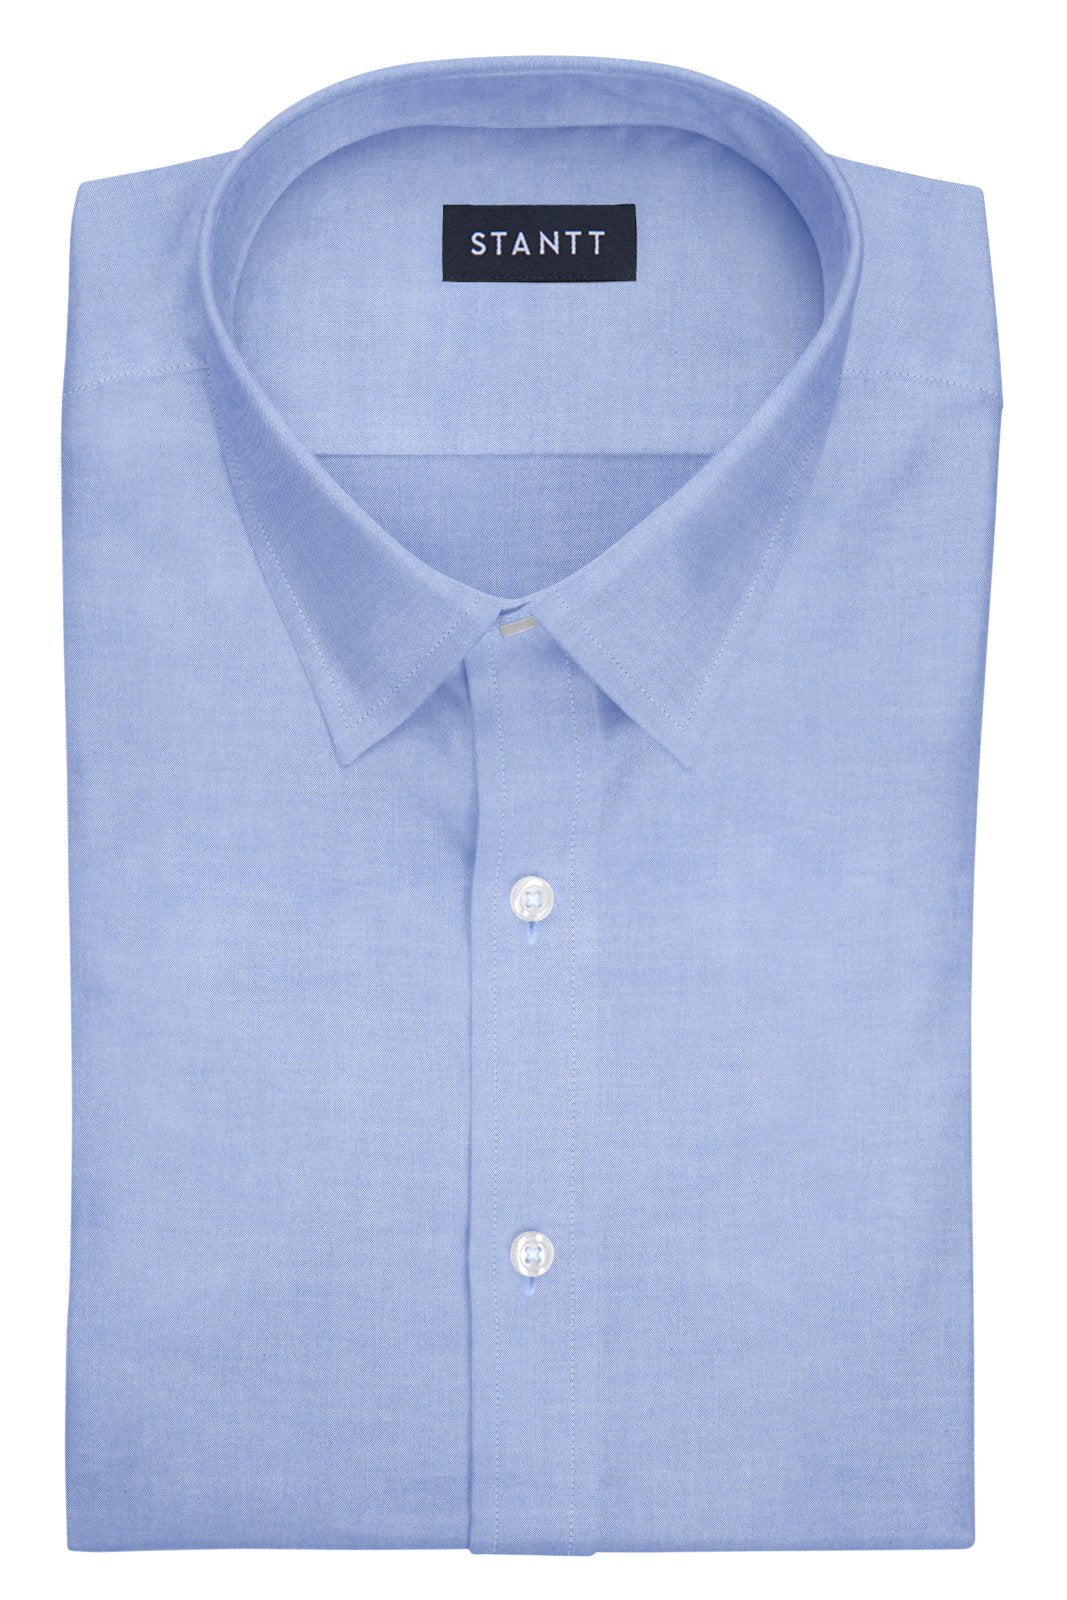 Blue Pinpoint Oxford: Semi-Spread Collar, French Cuff